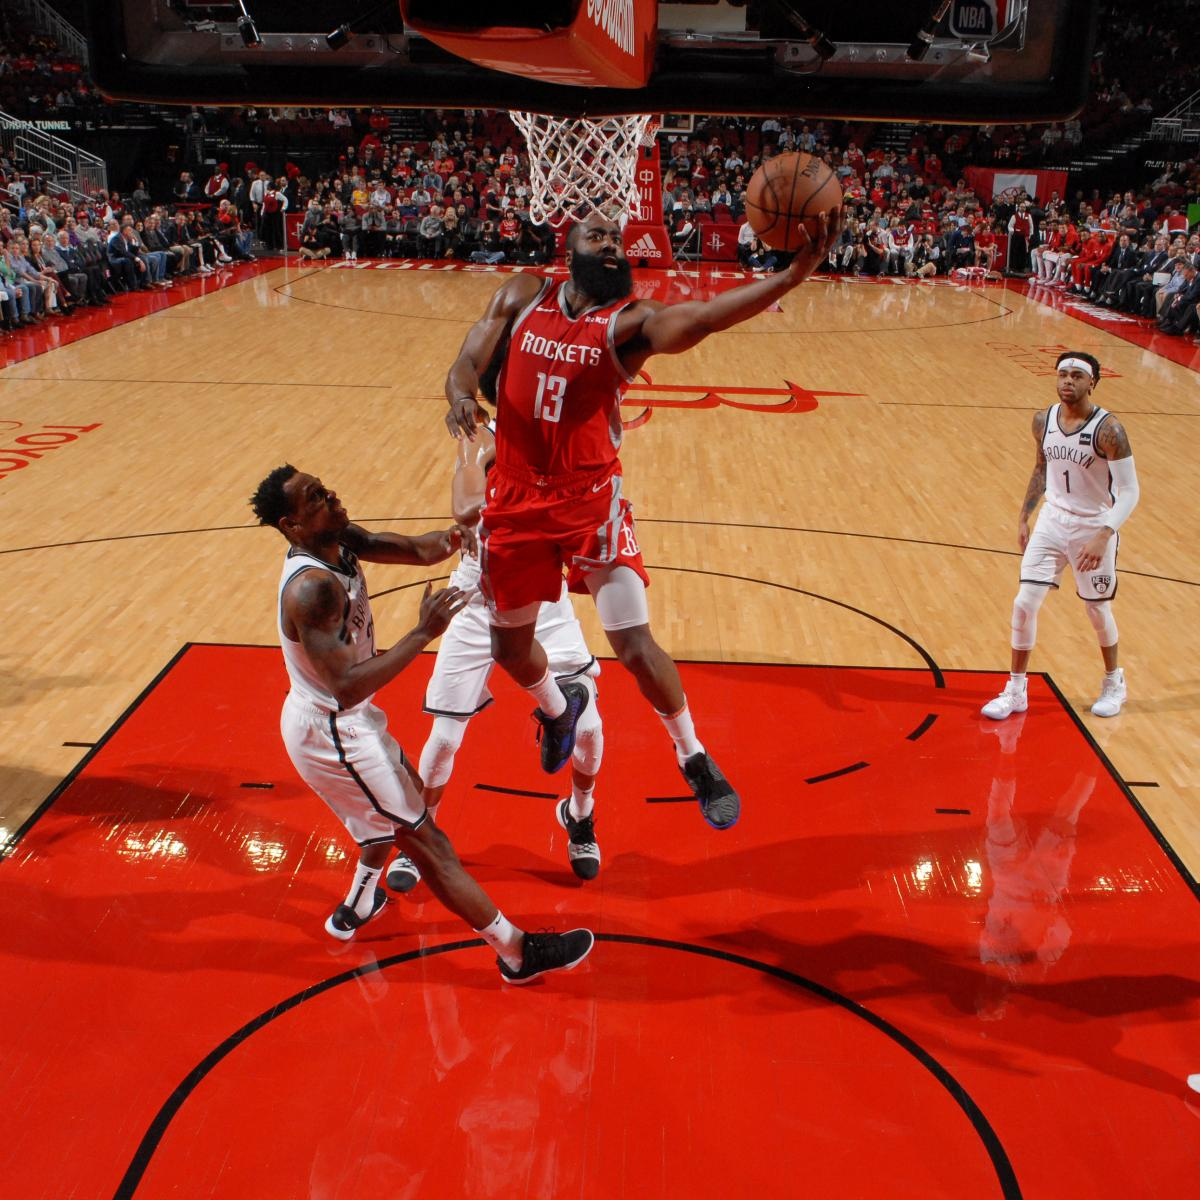 James Harden Records 2019: James Harden Erupts For 2nd Straight 50-Point Game In